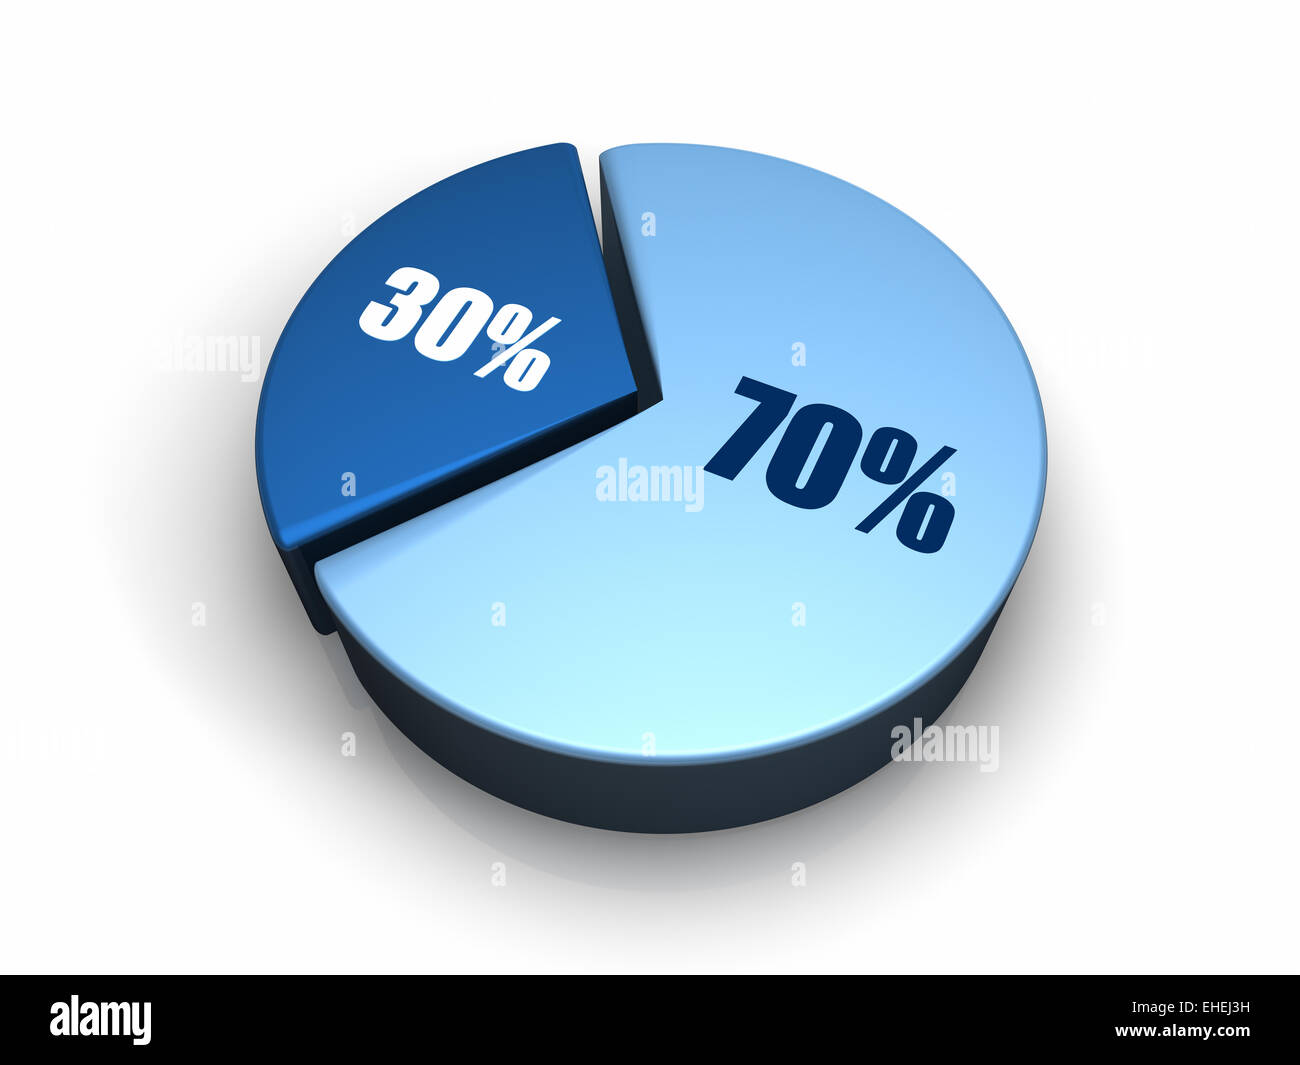 Blue pie chart 70 30 percent stock photo 79612165 alamy blue pie chart 70 30 percent nvjuhfo Image collections